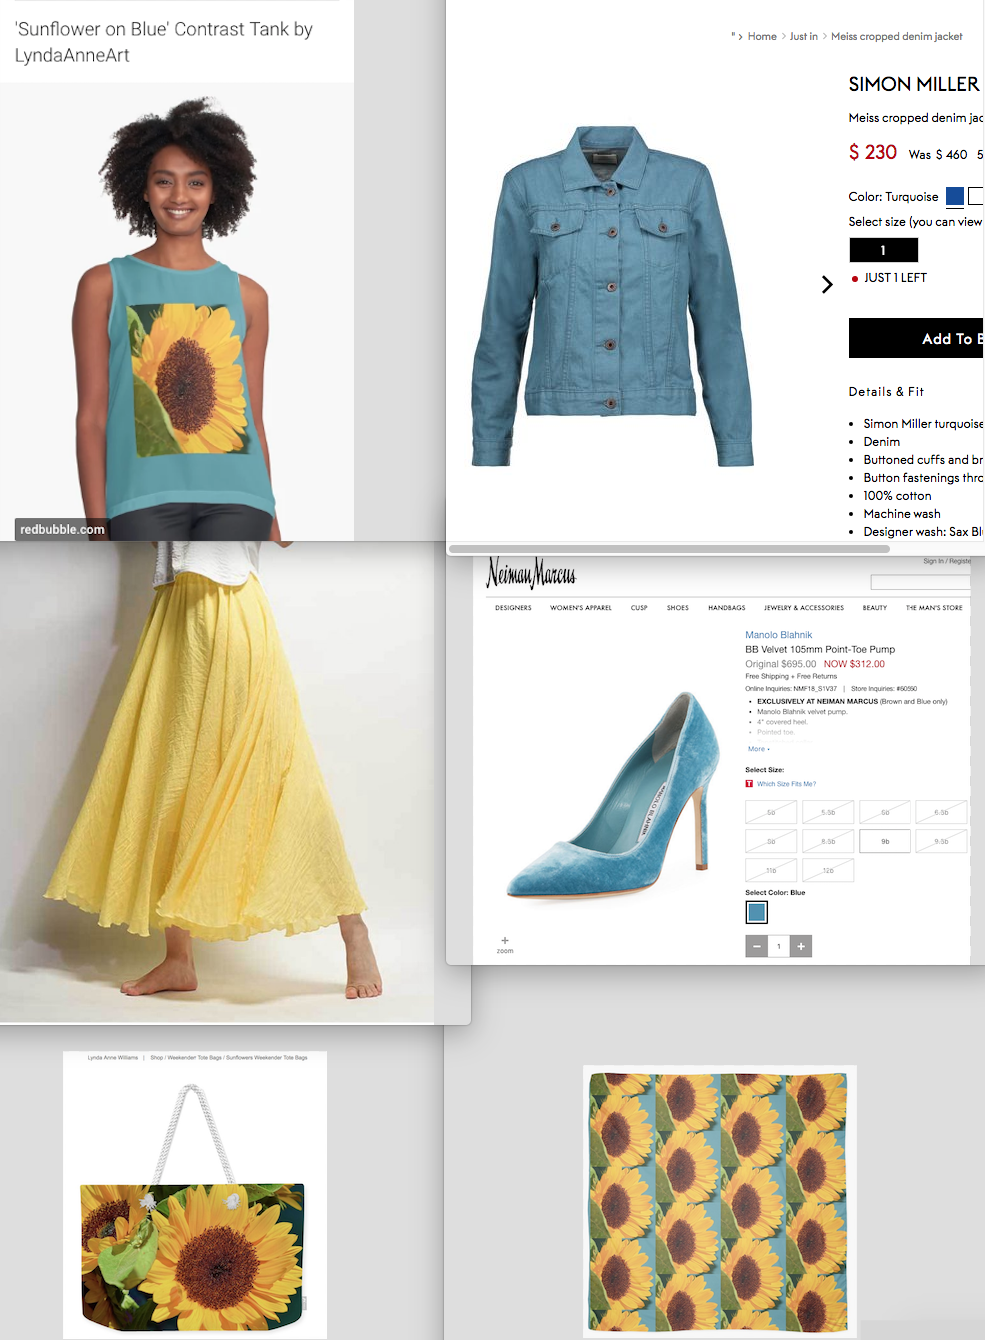 Lynda Anne Recommends Sunflower Tank, Tote, and Scarf